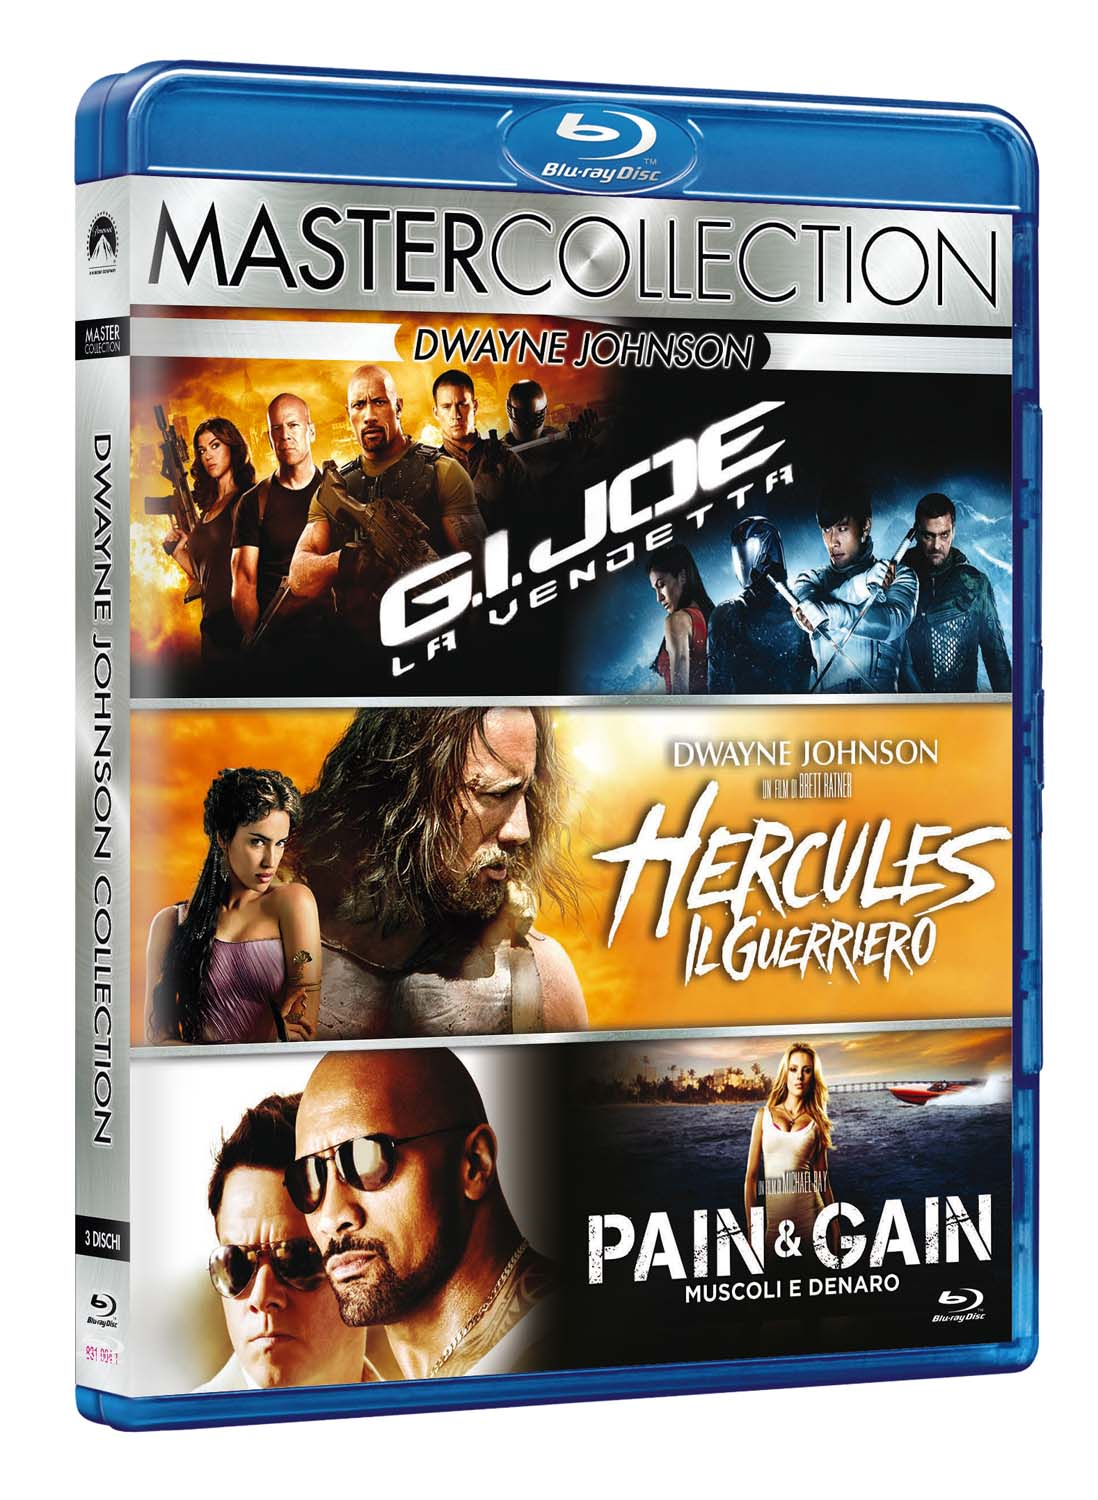 COF.DWAYNE JOHNSON MASTER COLLECTION (3 BLU-RAY)